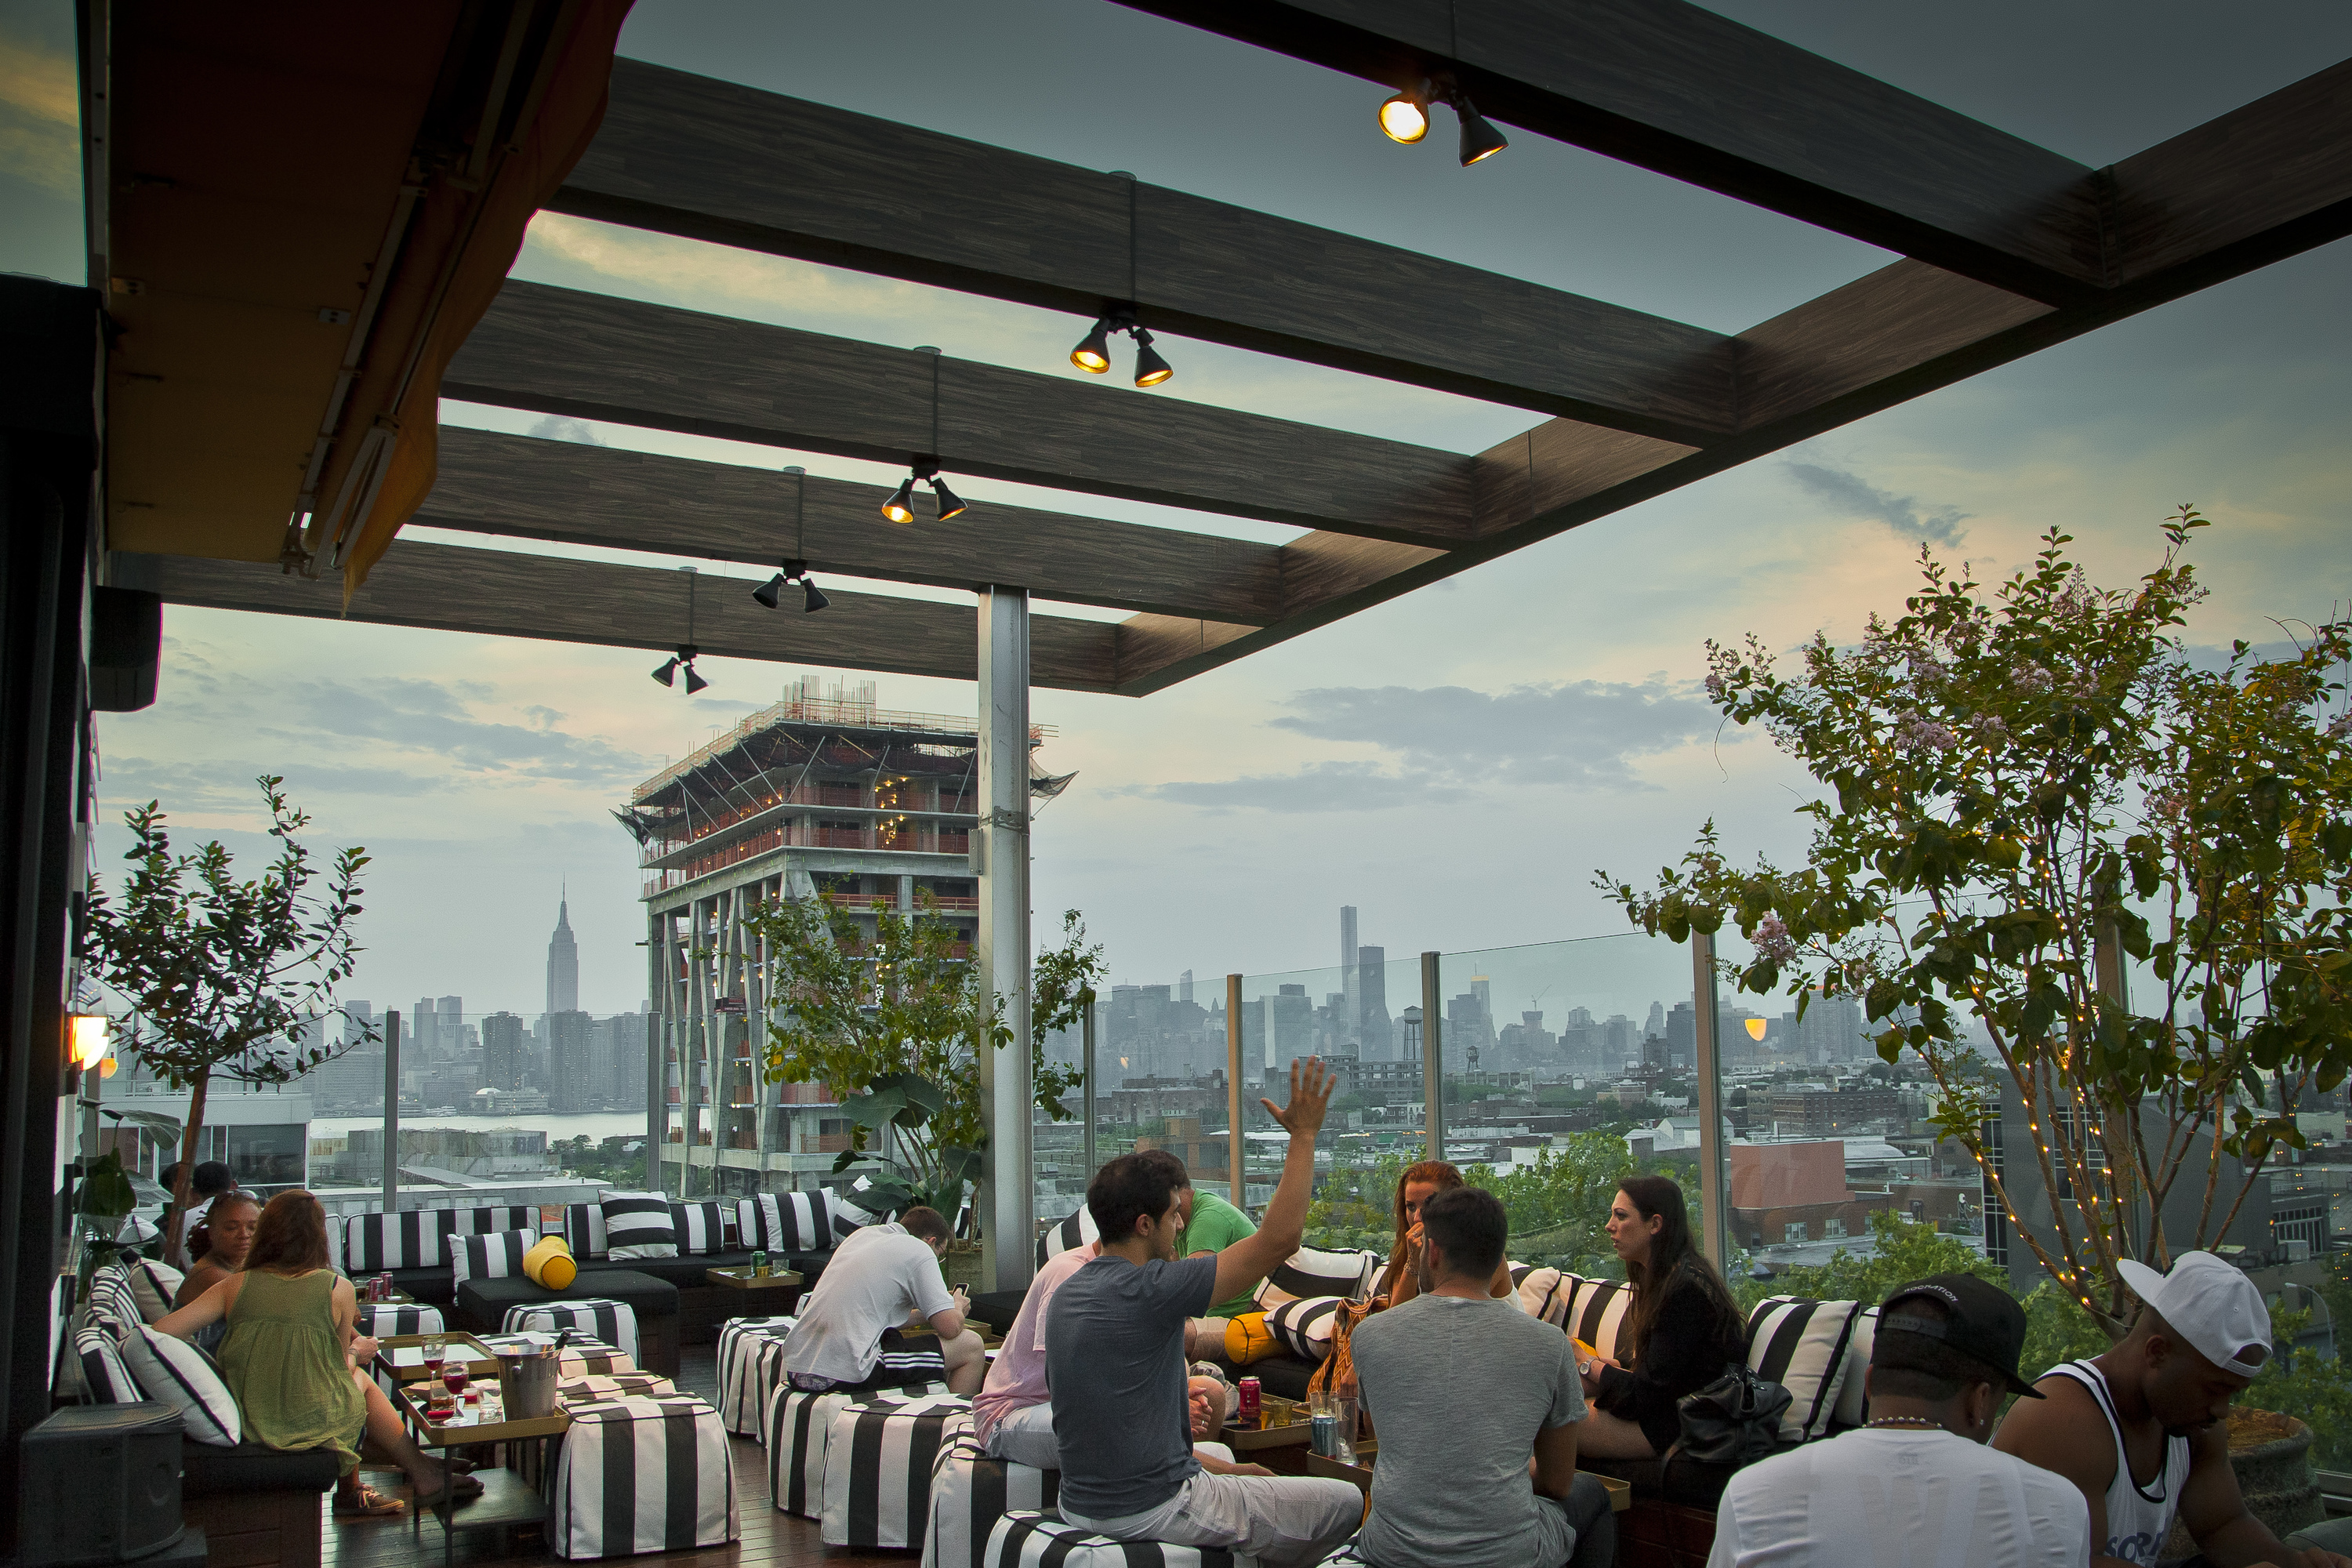 Best things to do outside in new york including rooftop bars for Best outdoor dining